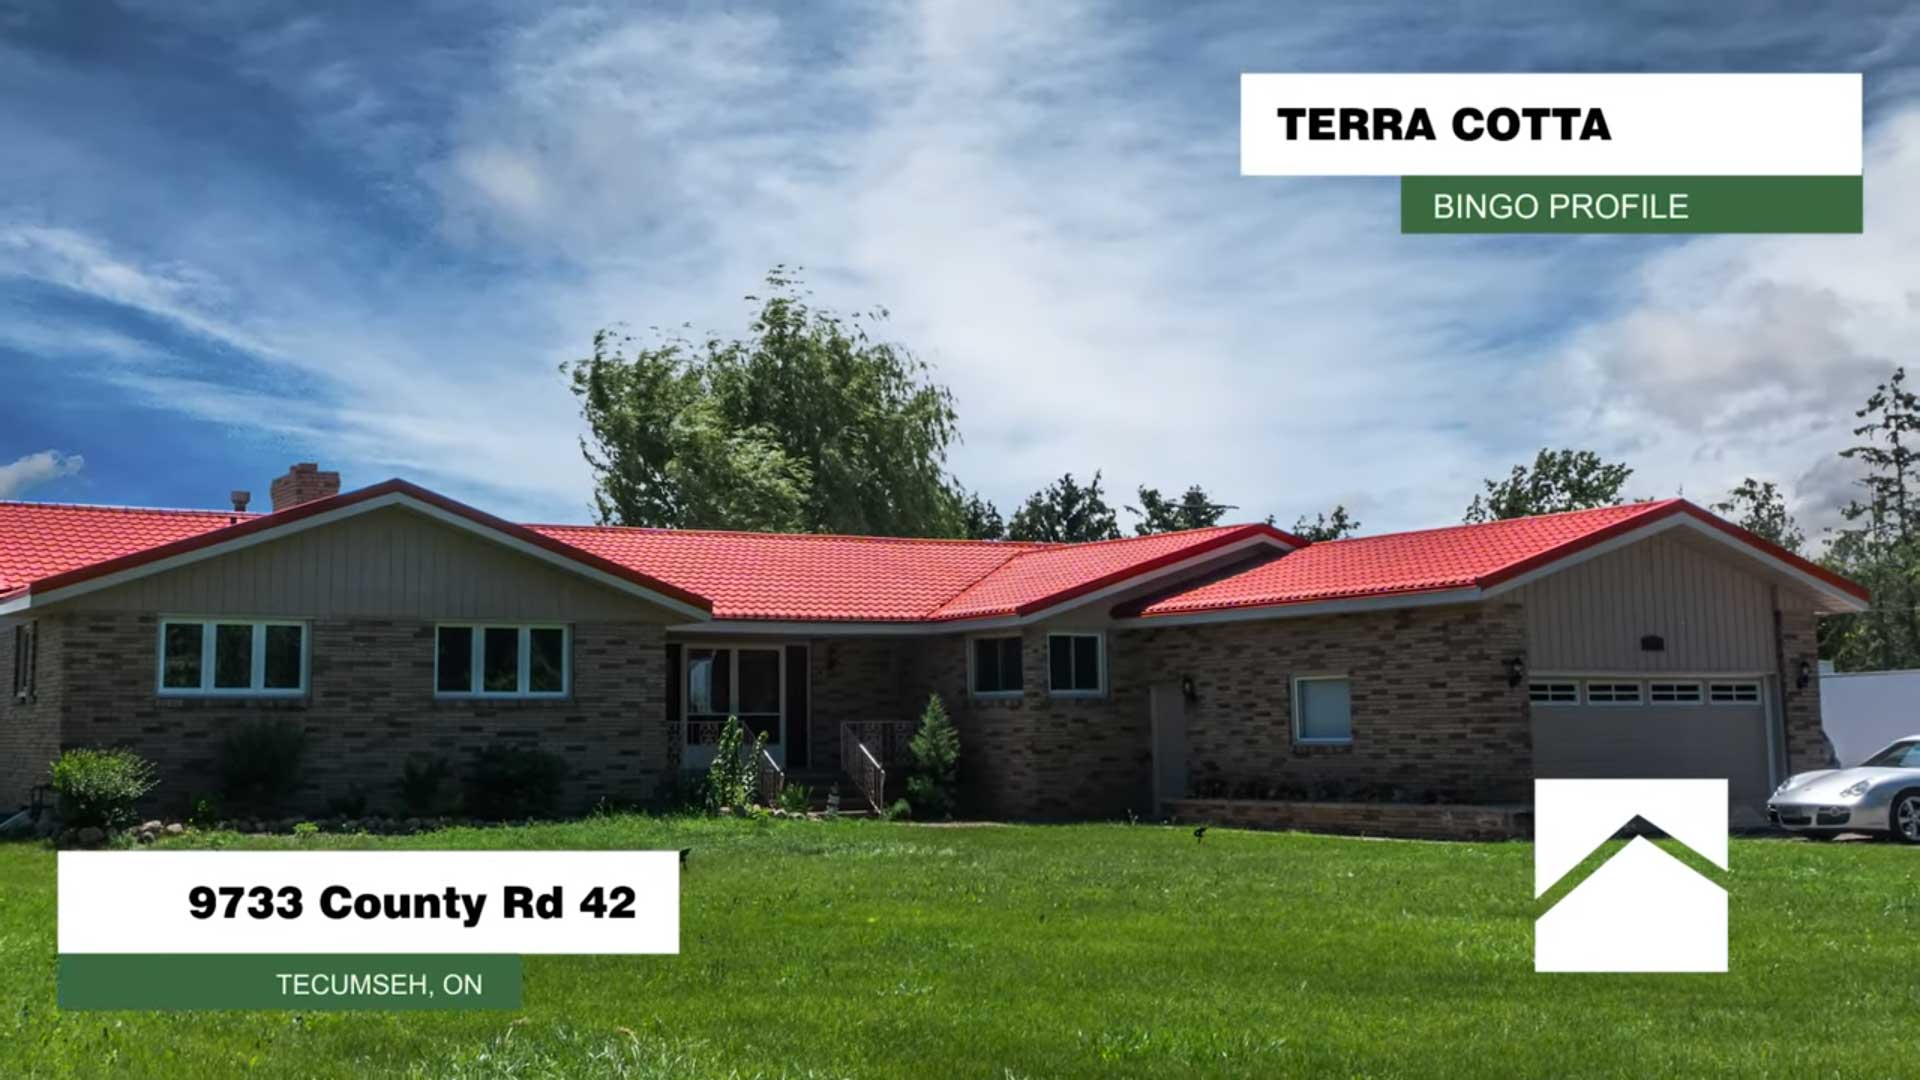 9733 County Rd 42 Tecumseh Ontario Bingo Profile Terra Cotta Colour